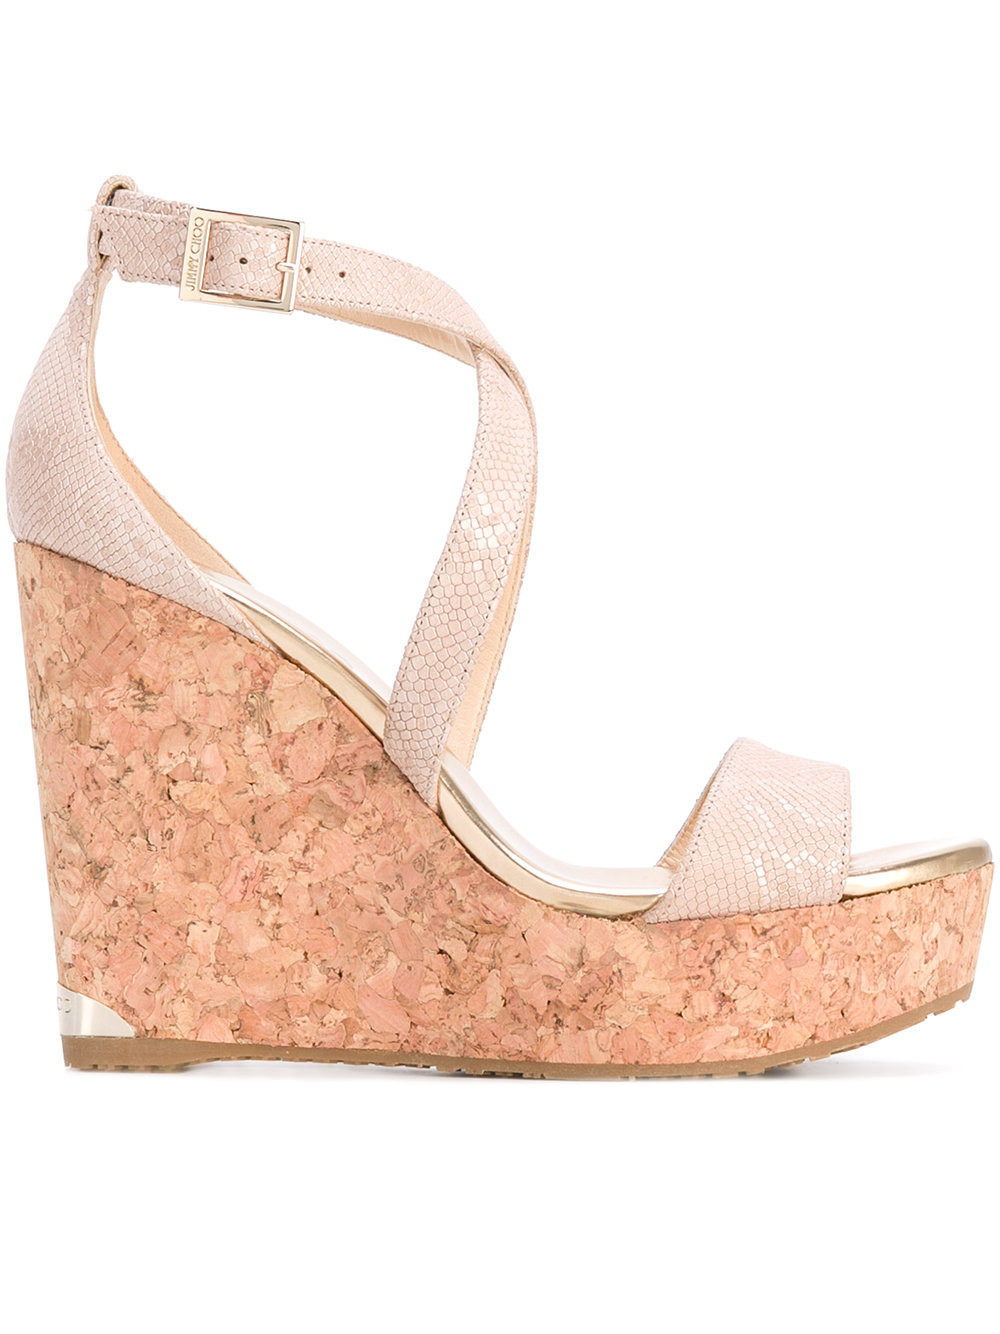 cork wedges wedges nude shoes